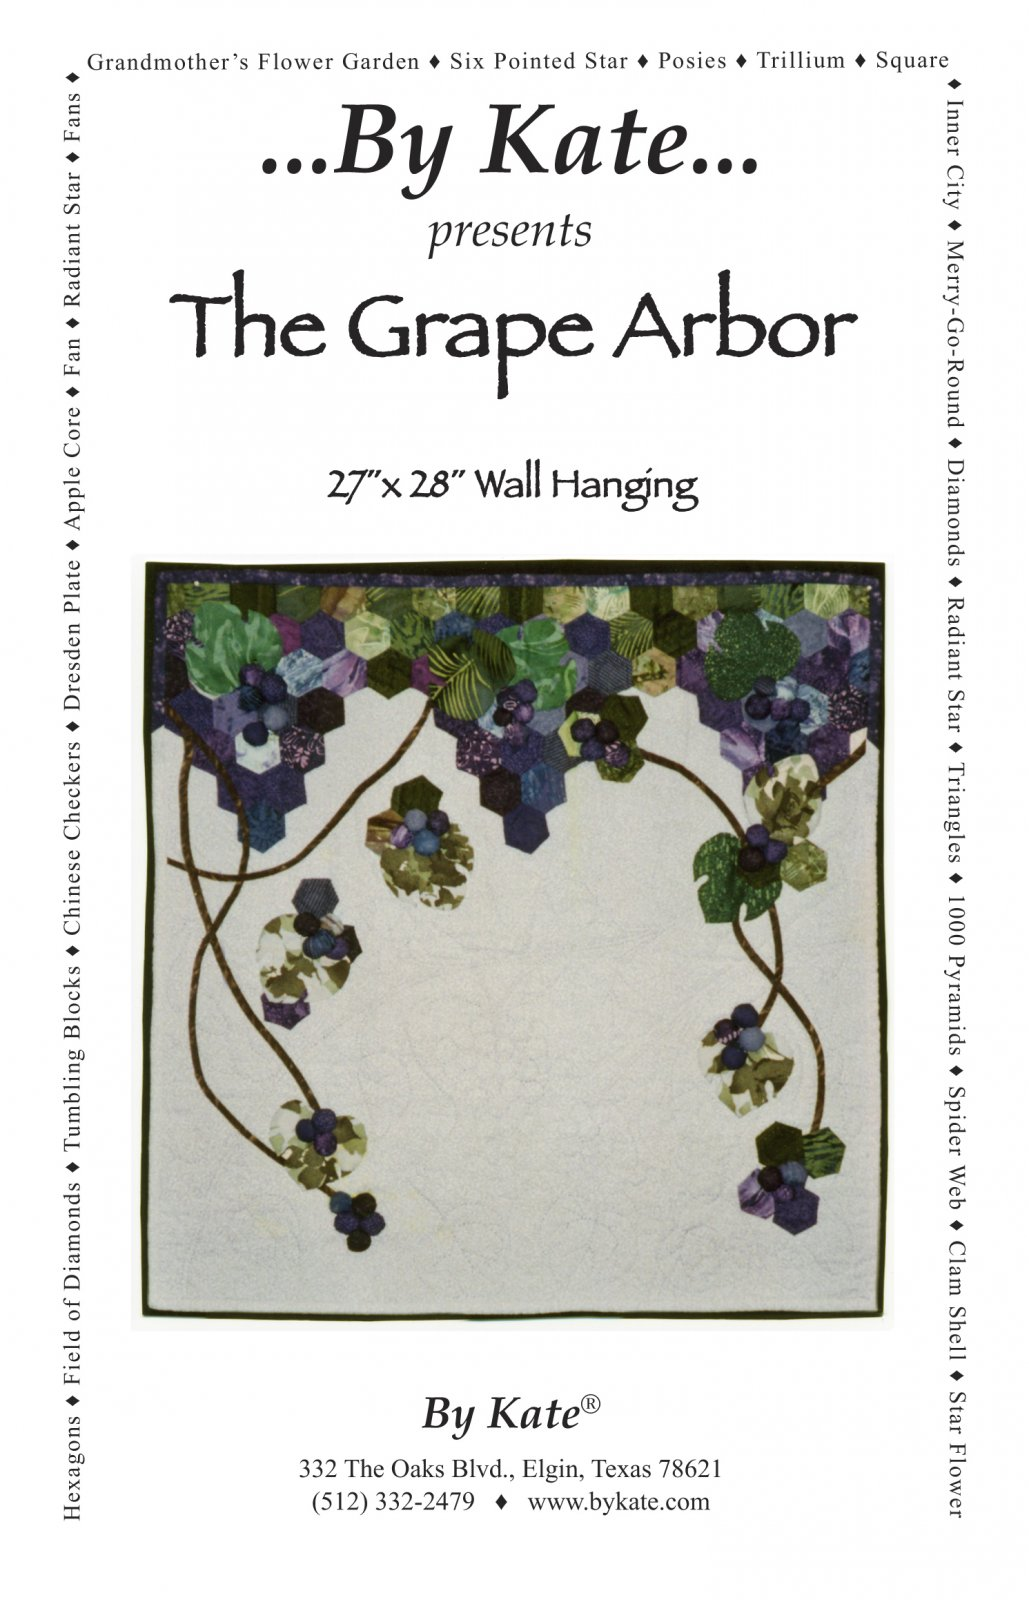 The Grape Arbor Wall Hanging